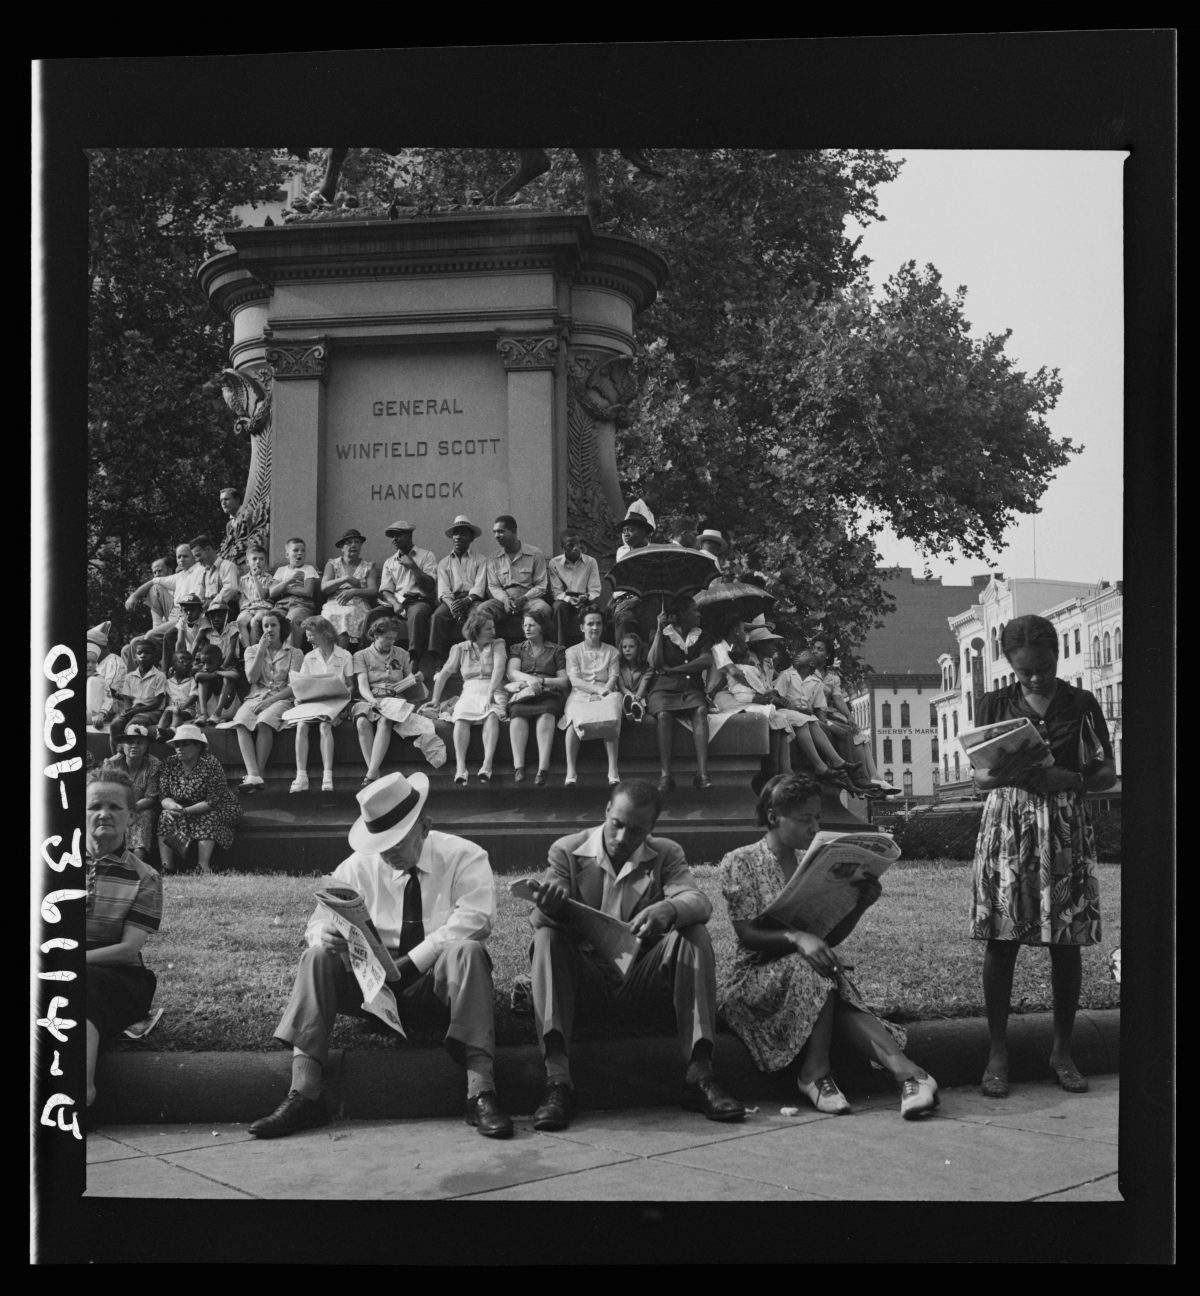 washington Dc  war parade 1940s Esther Bubley office of war information